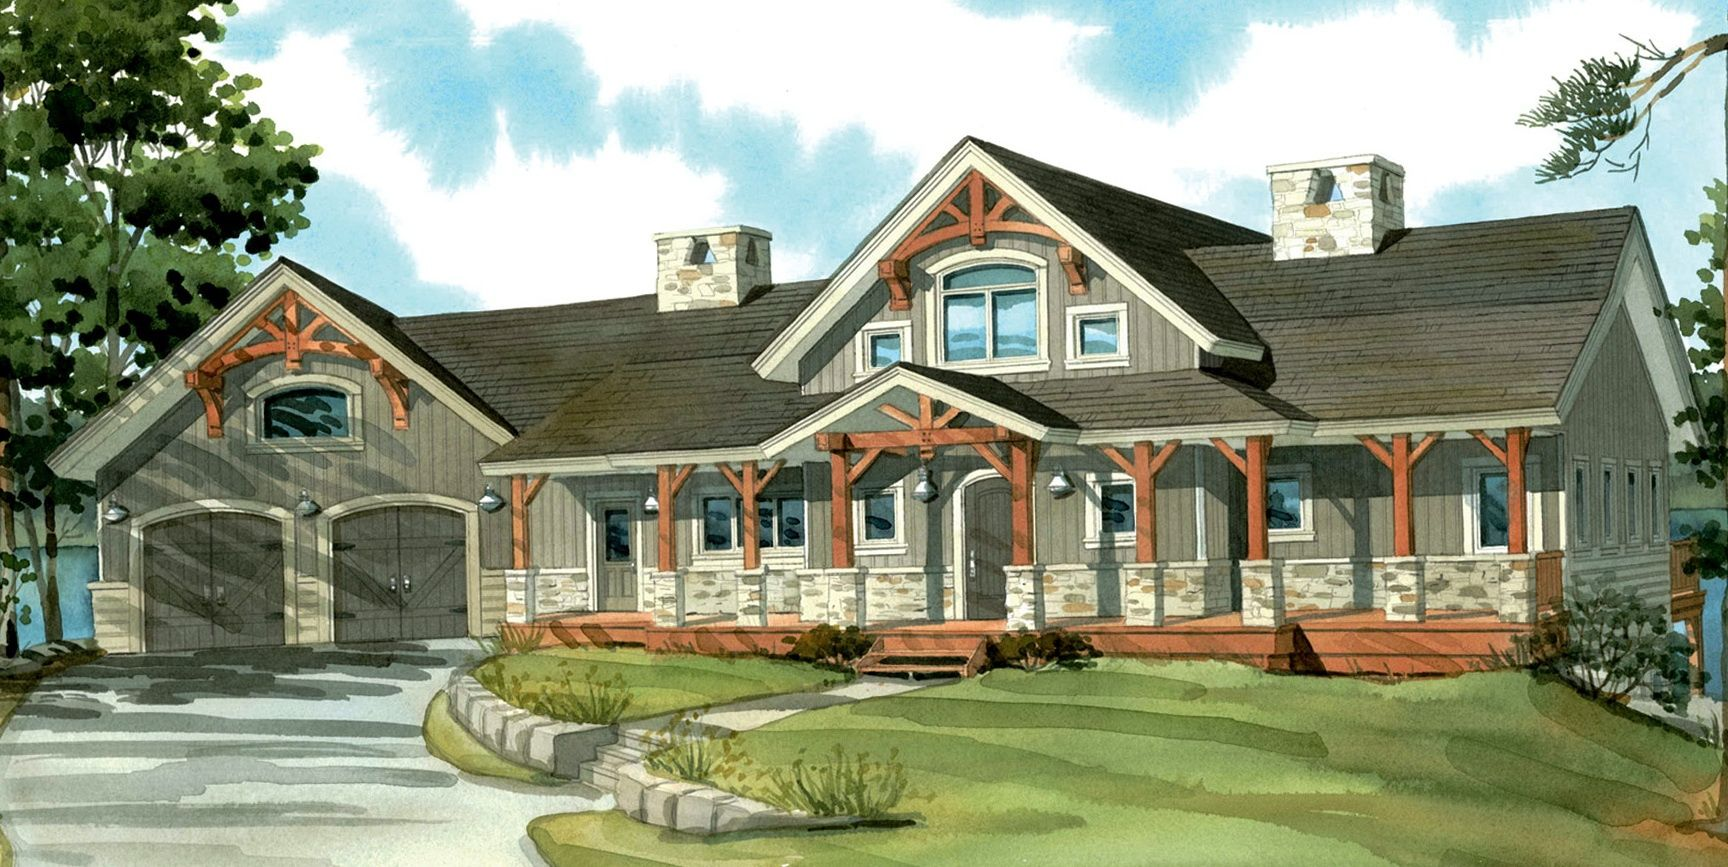 Raised Ranch Style Home with Wrap around Porch | Bat ... on raised waterfront house plans, raised floor house plans, raised living room house plans, raised beach house plans coastal, raised foundation house plans, raised house plans southern,